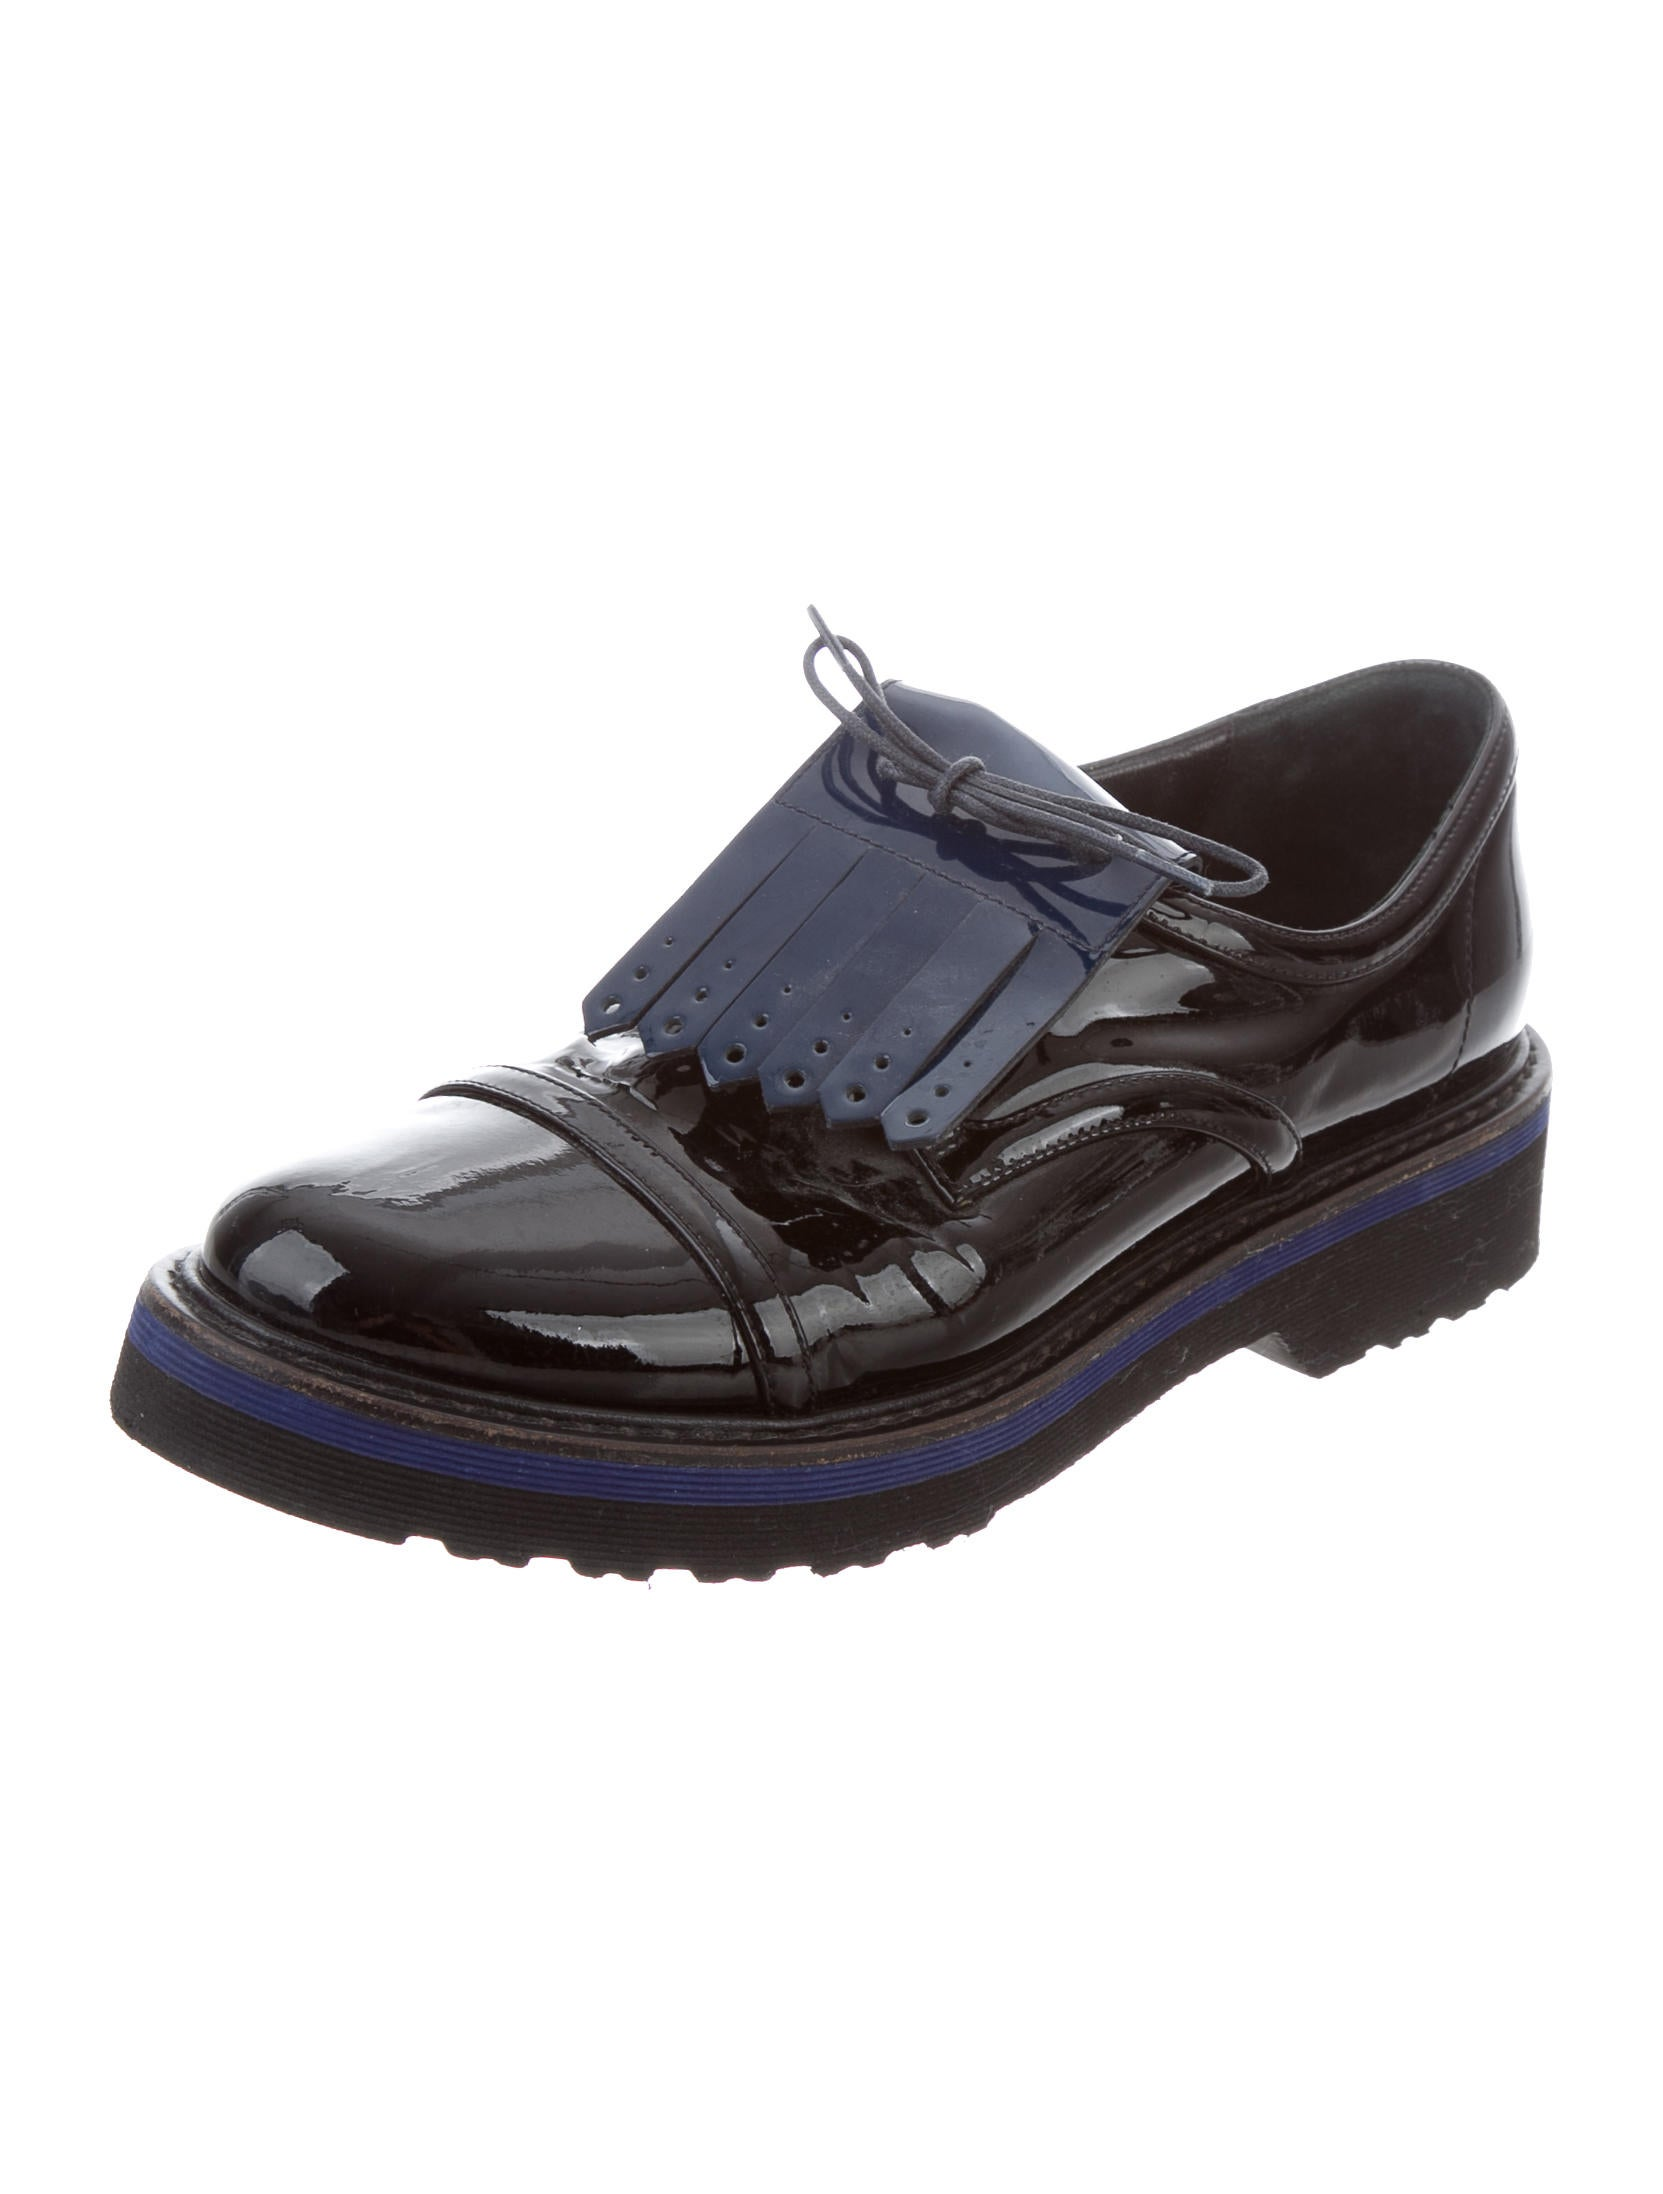 Shop eBay for great deals on Women's Patent Leather Oxfords. You'll find new or used products in Women's Patent Leather Oxfords on eBay. Free shipping on many items.